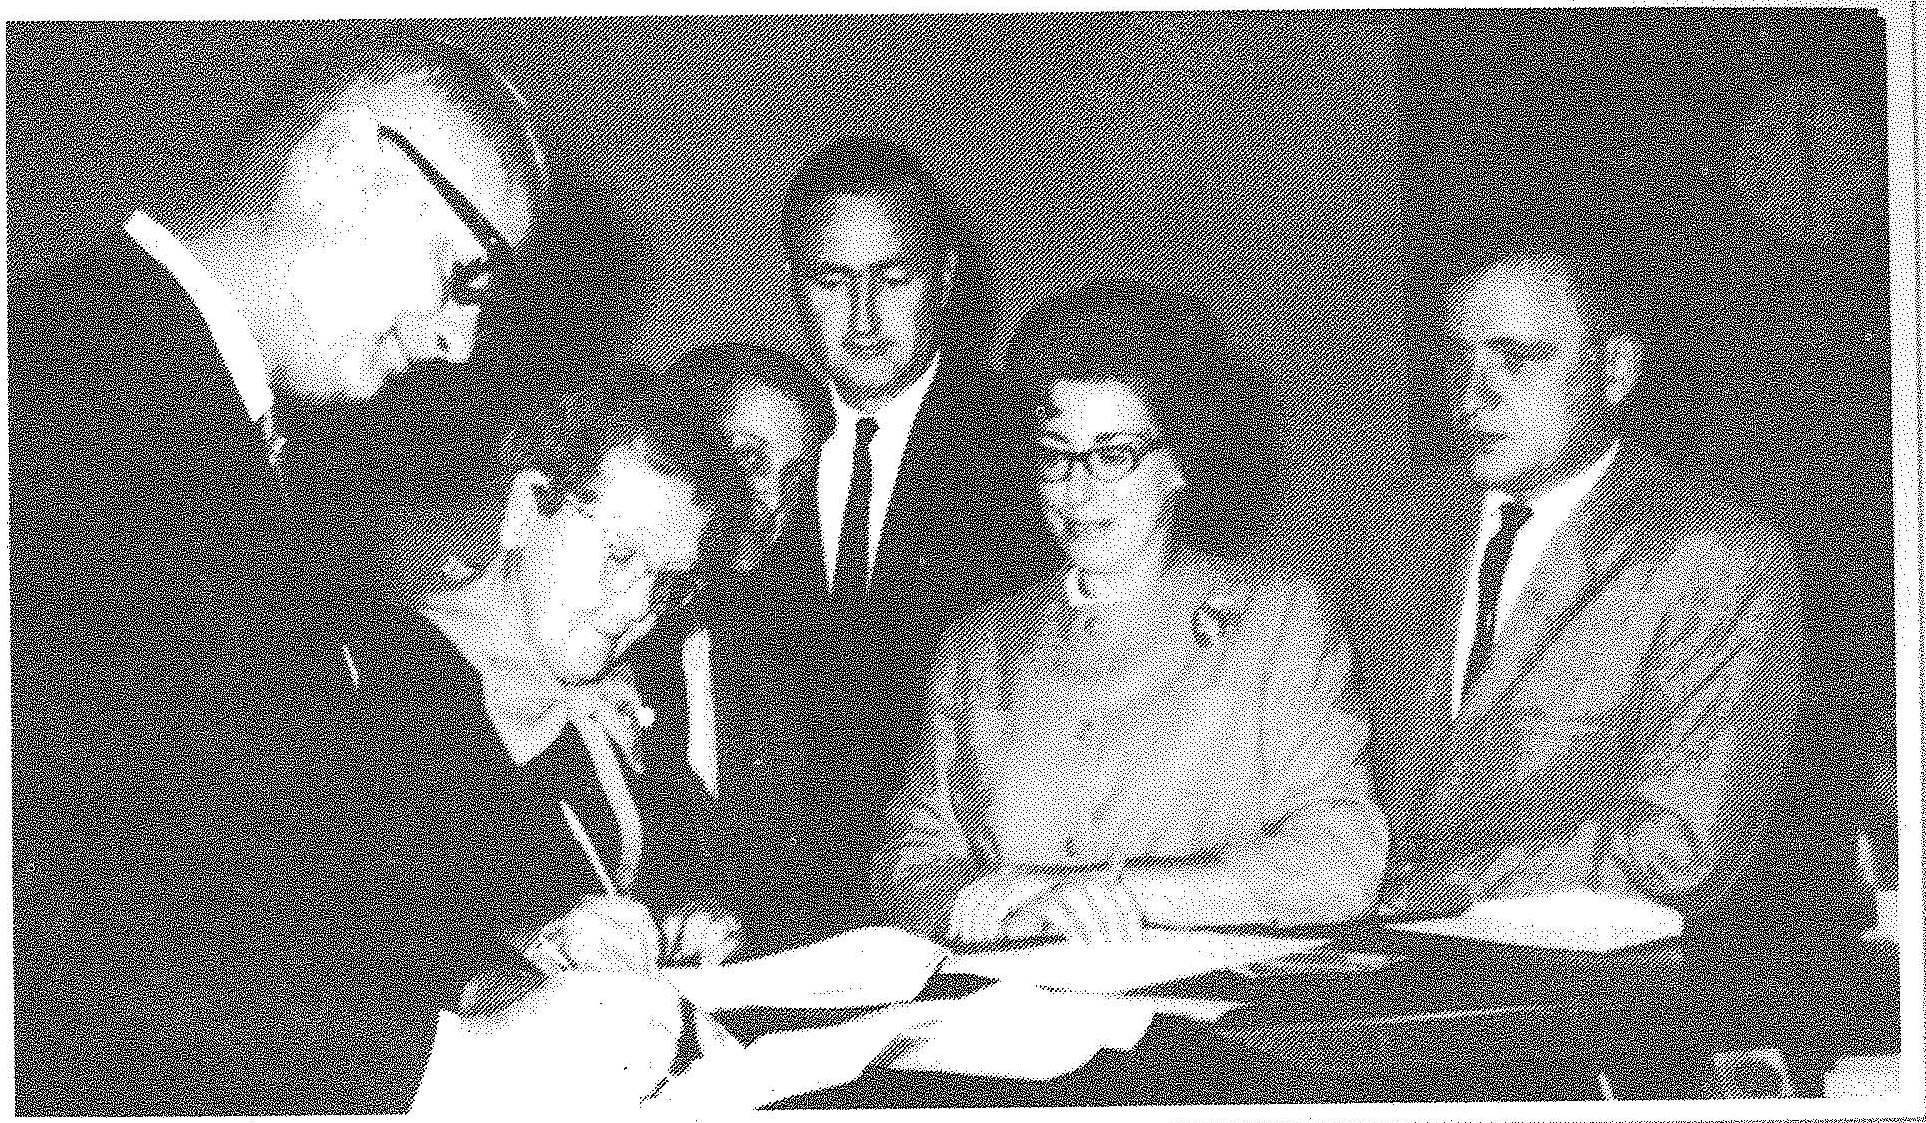 The spring 1969 signing of the Hoffman Estates Park District's purchase of the Vogelei property. At the last minute, owner Ida Vogelei decided she didn't want to sell the driveway, but ultimately gave in.